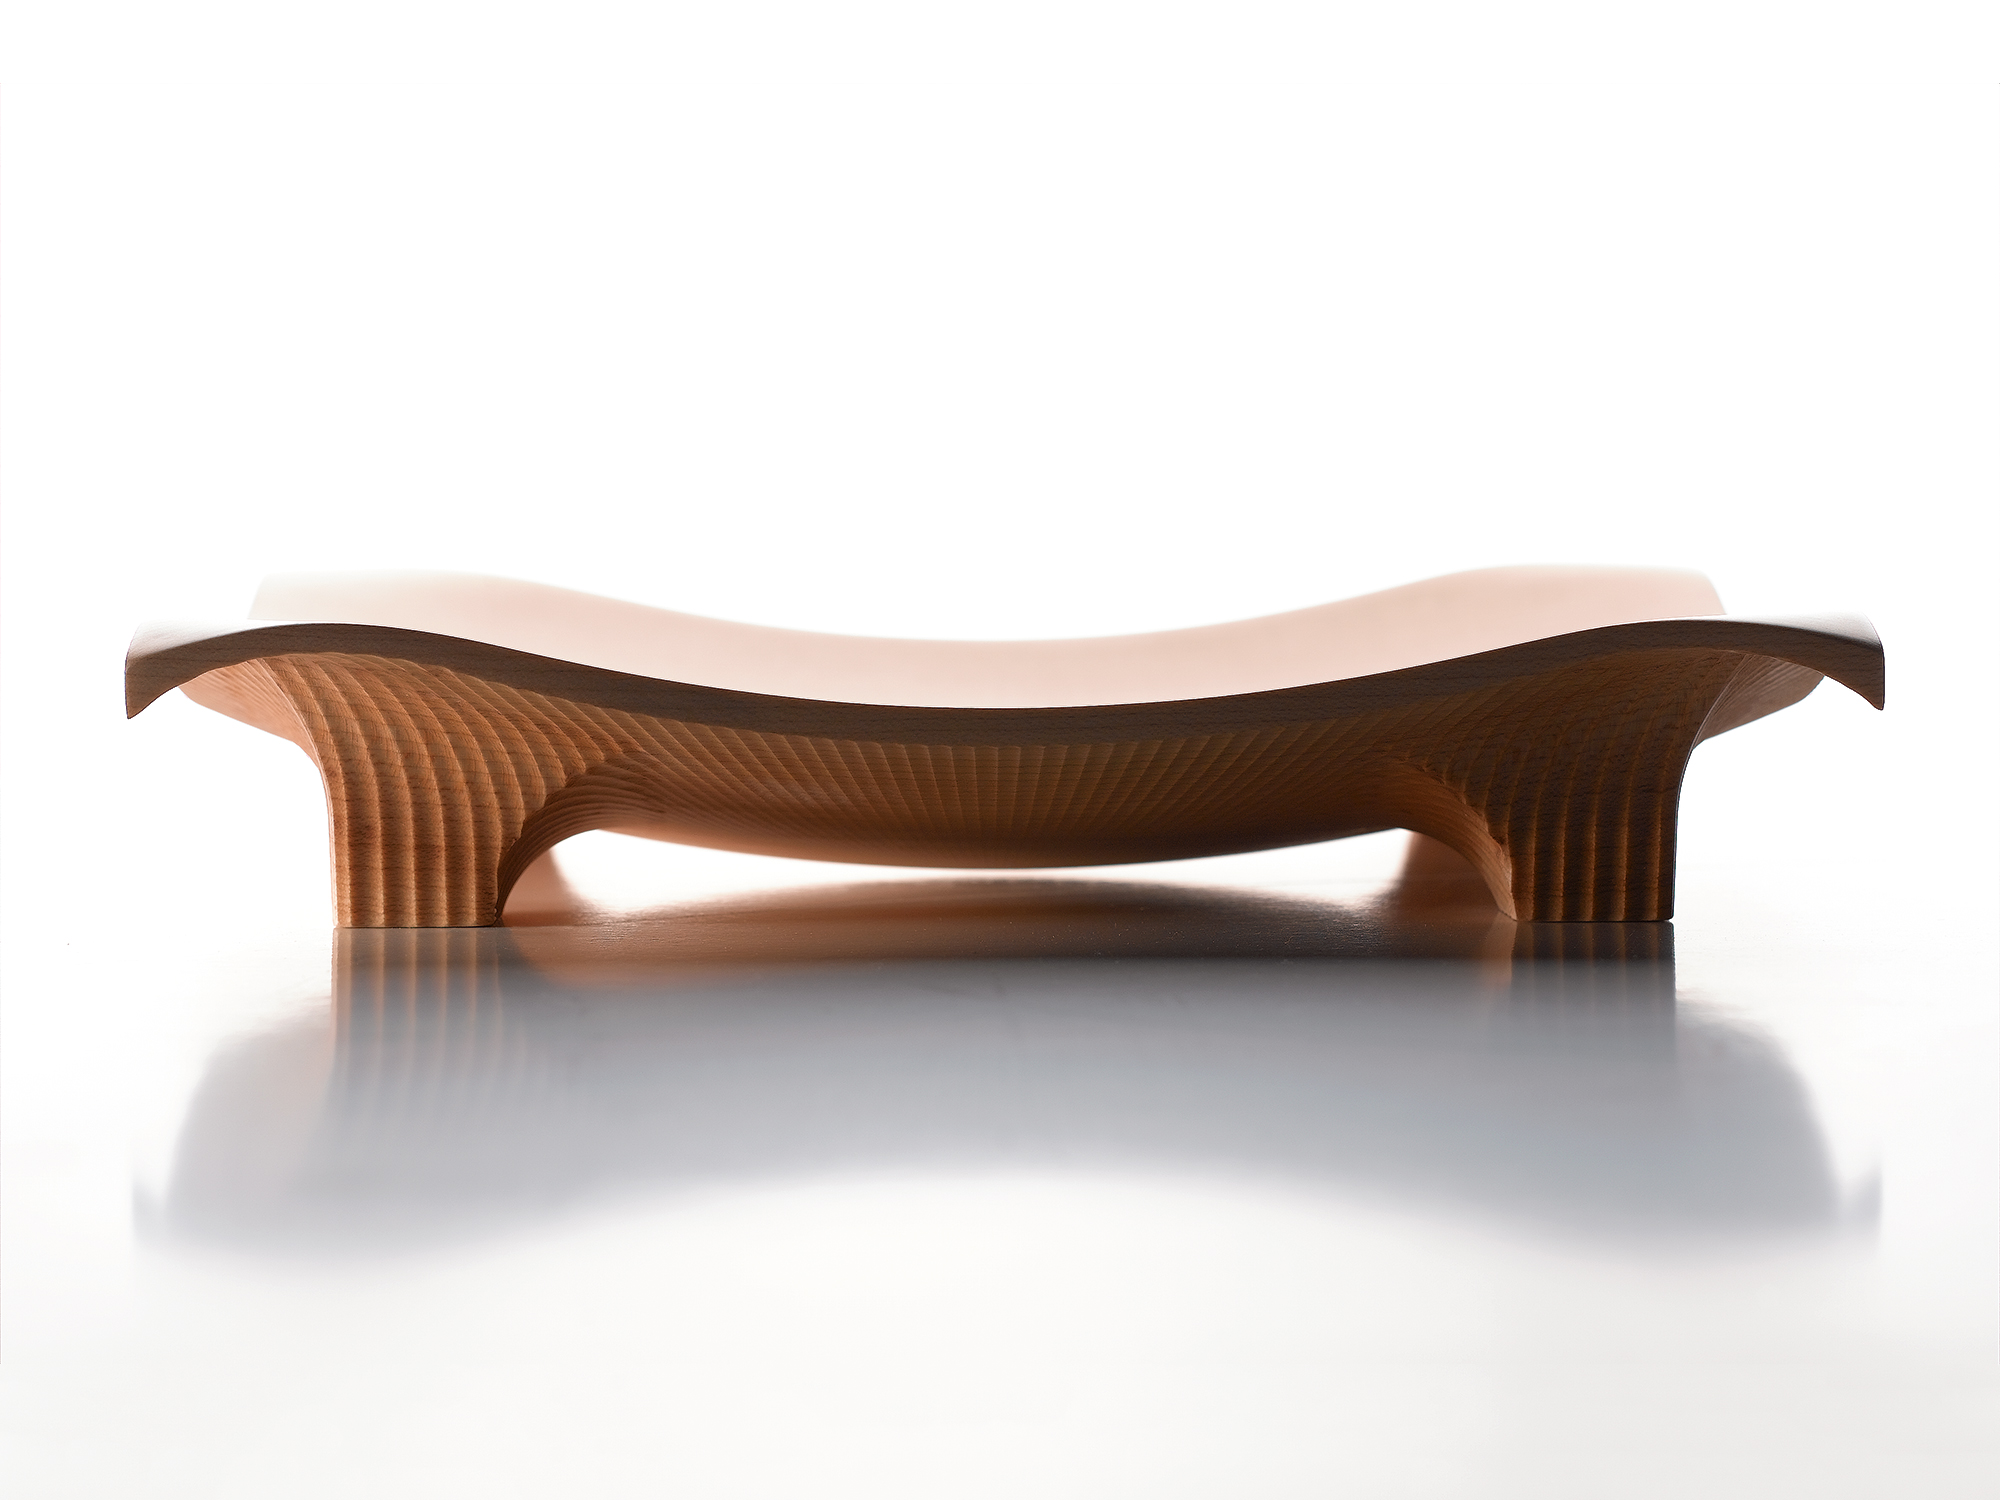 Mark wilkinson furniture collection craft 6